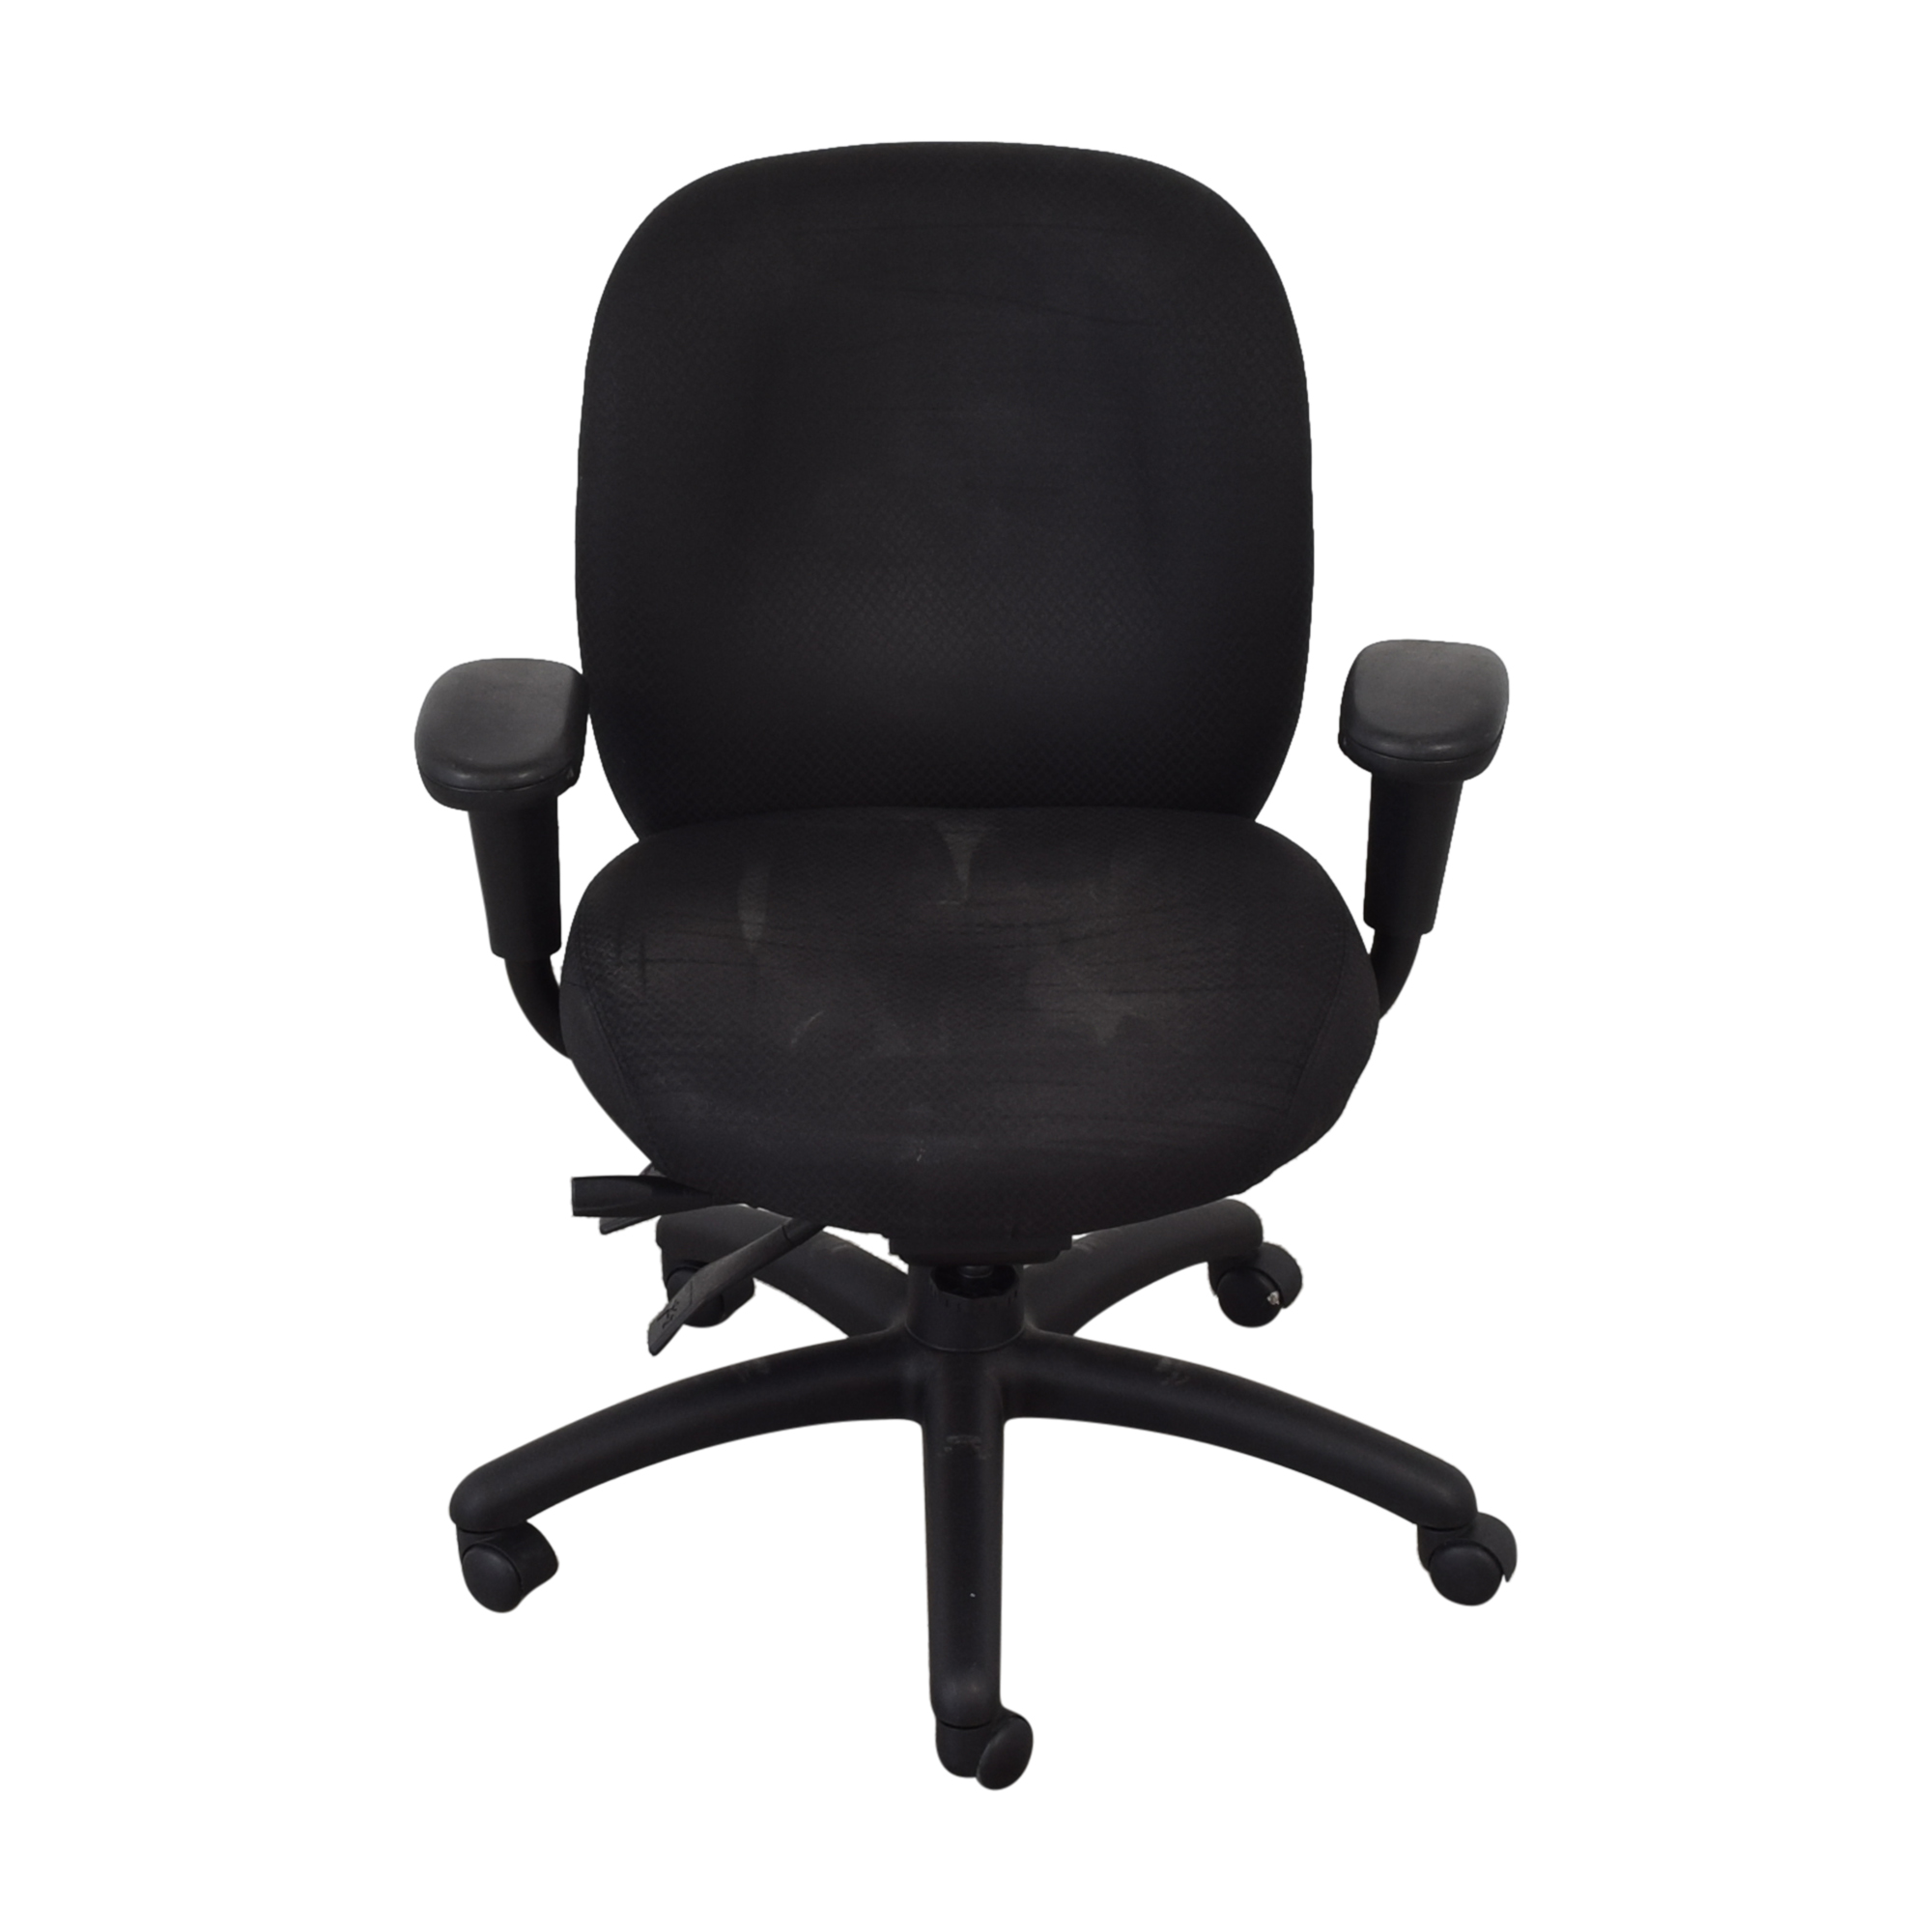 shop Offices to Go Offices to Go Black Quilt Office Chair online